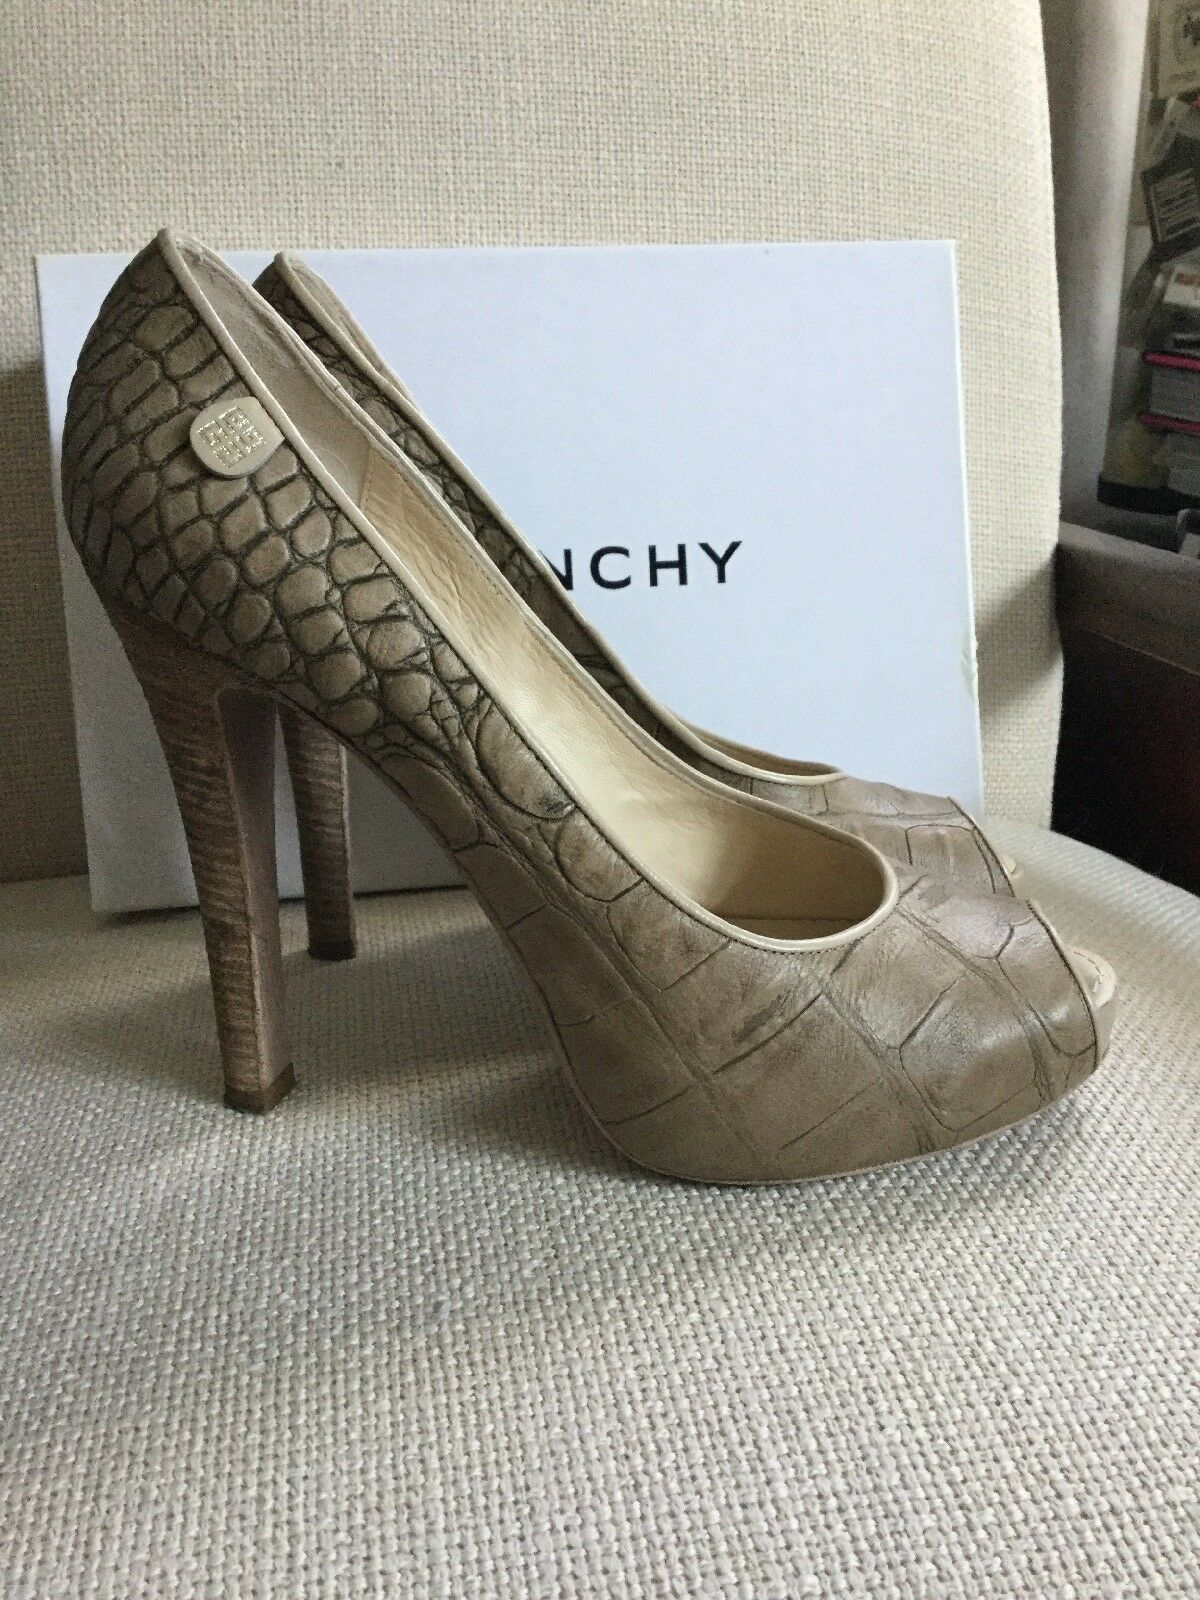 Auth GIVENCHY Beige Peep Toe Platform Crocodile Leather Heel Pump schuhe 9,  550